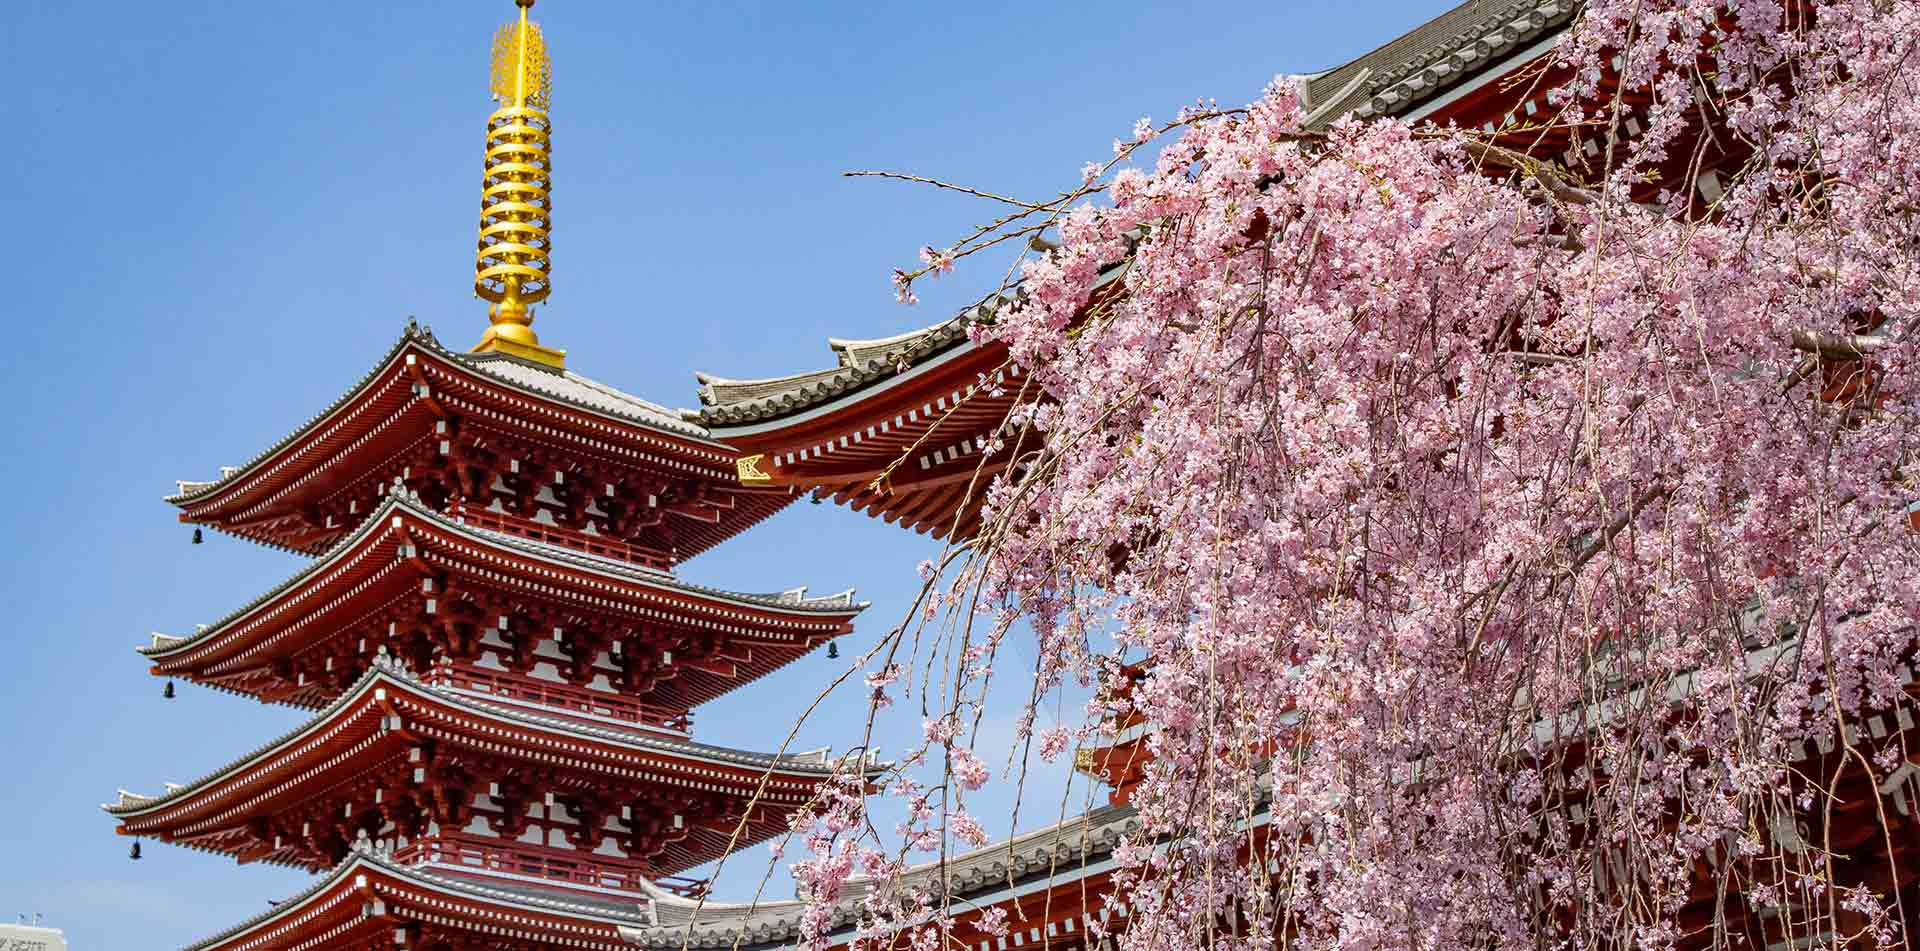 Asia Japan Tokyo Asakusa Senso-ji Buddhist temple with cherry blossom flowers - luxury vacation destinations